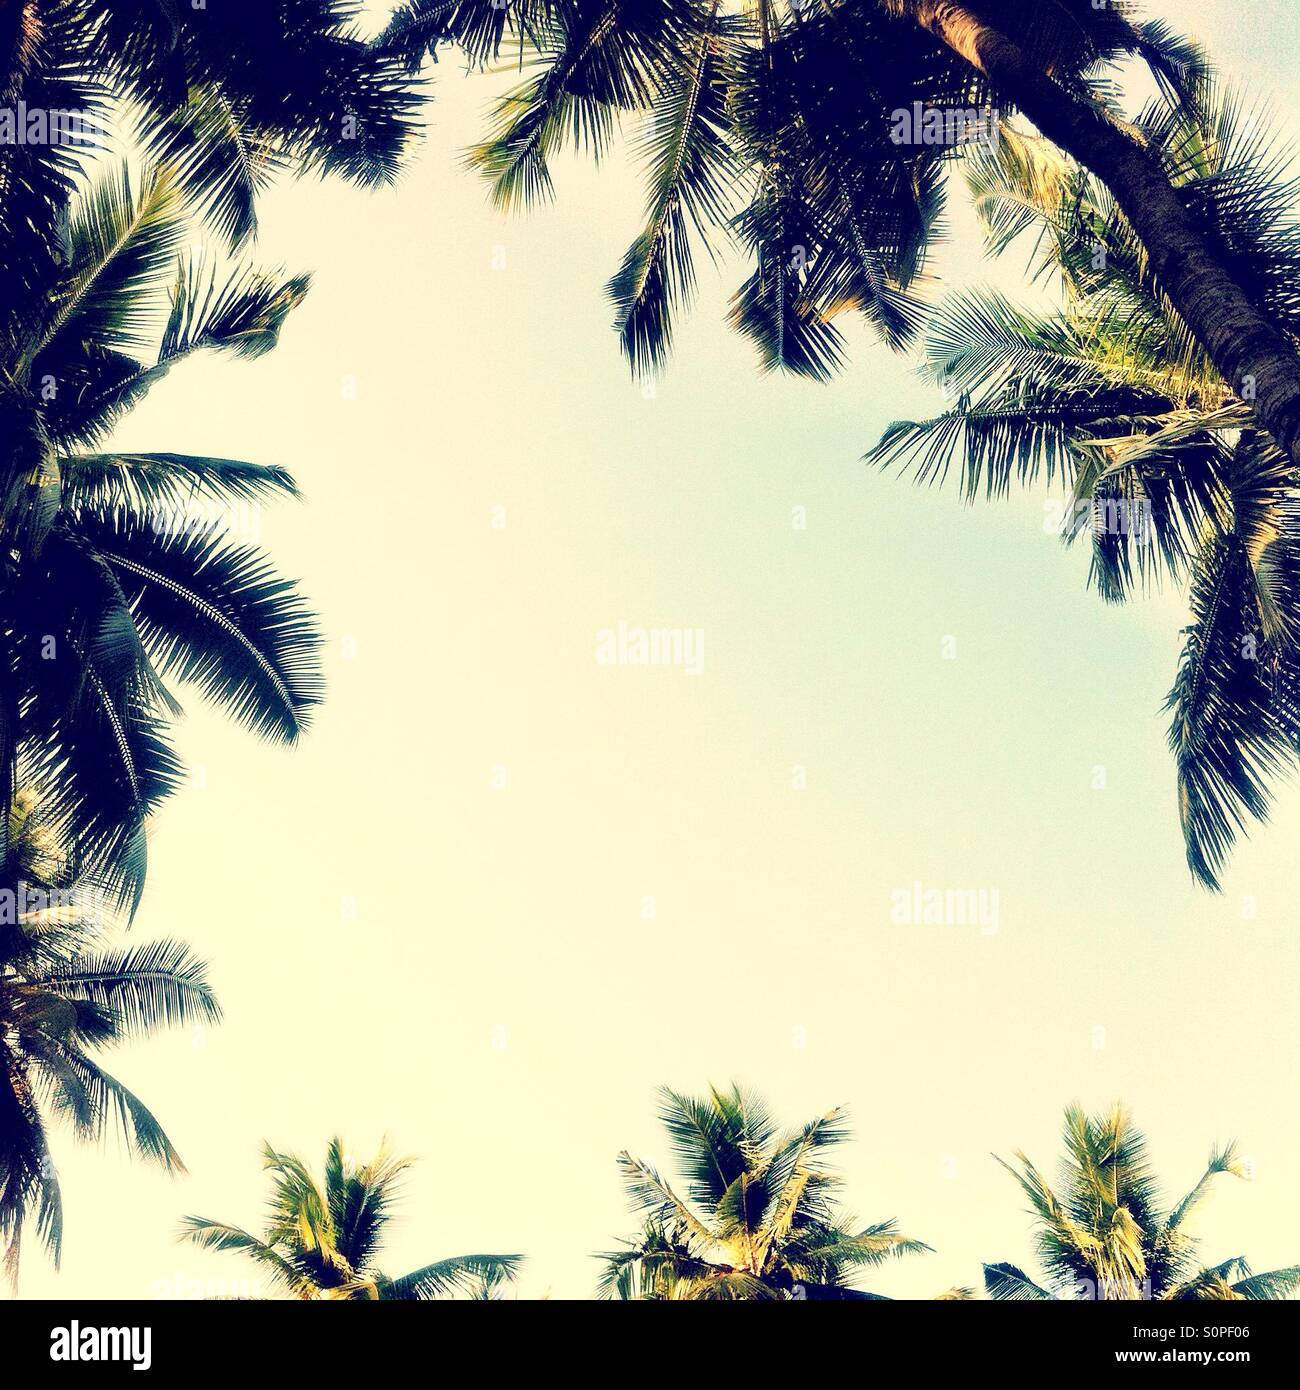 Palm trees enclosing an area of blue sky - Stock Image